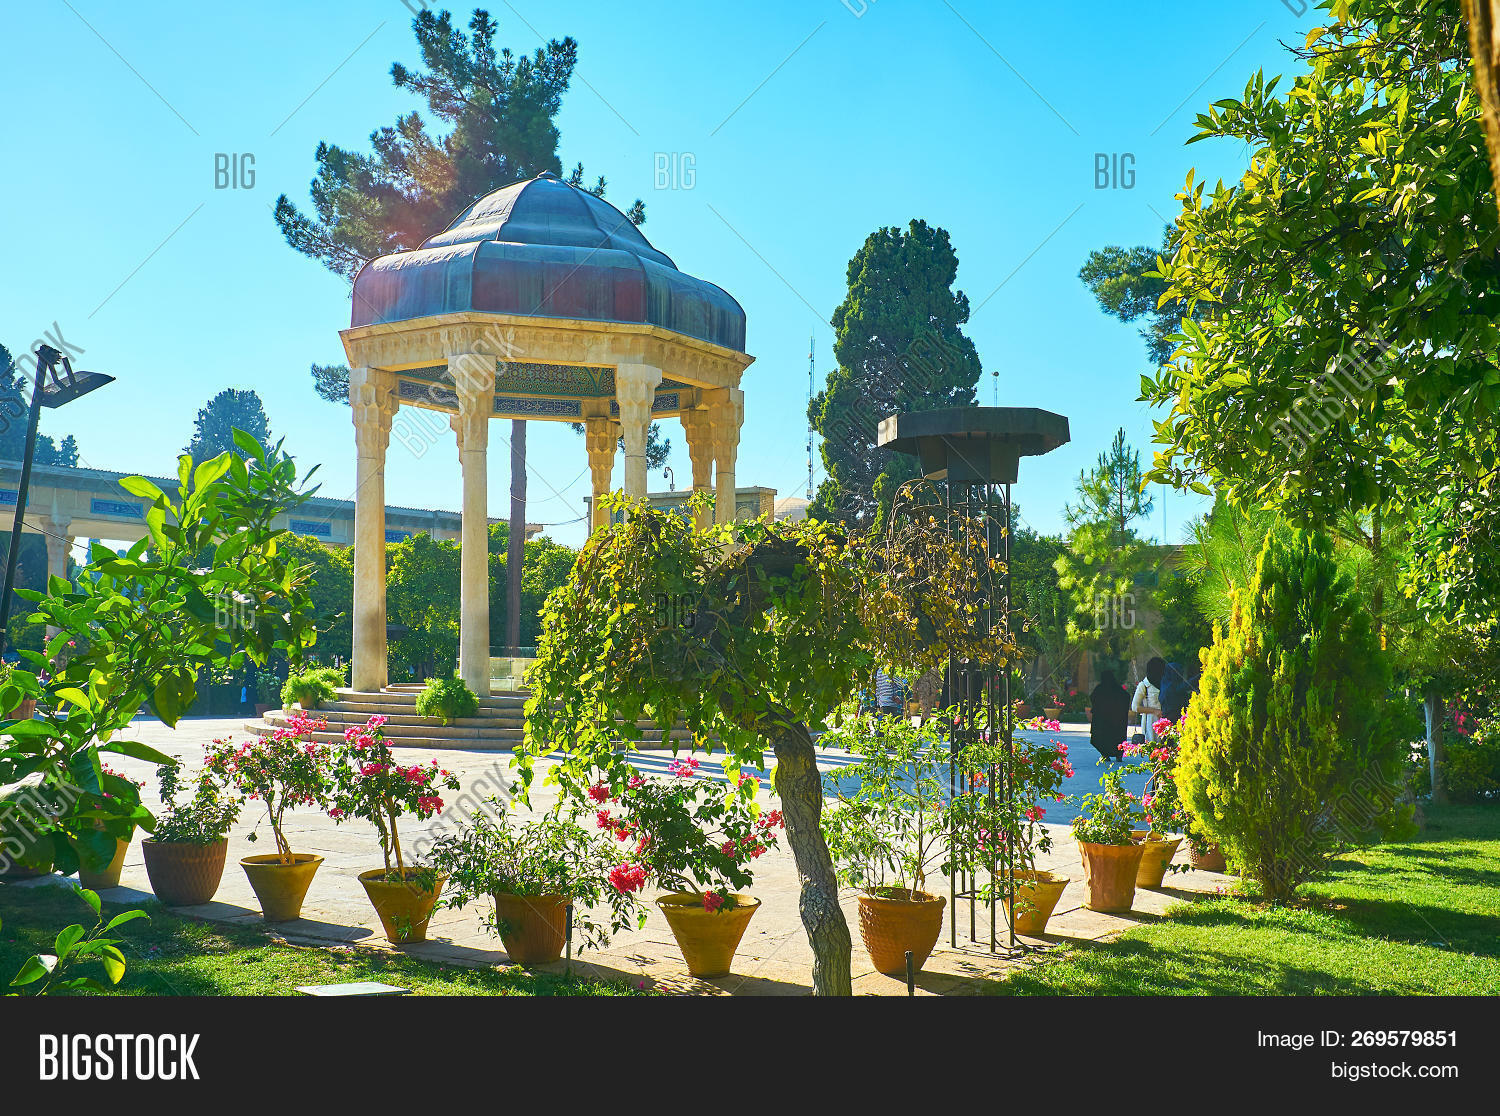 alcove,alley,architecture,asia,blooming,blossom,building,cemetery,city,cityscape,colonnade,column,coniferous,decoration,east,fars,flower,garden,gate,hafez,hafezieh,house,iran,landmark,mausoleum,medieval,memorial,middle,mussala,old,park,pars,pavilion,persia,pillar,pine,plant,poet,shiraz,sightseeing,square,stone,tomb,tourism,travel,tree